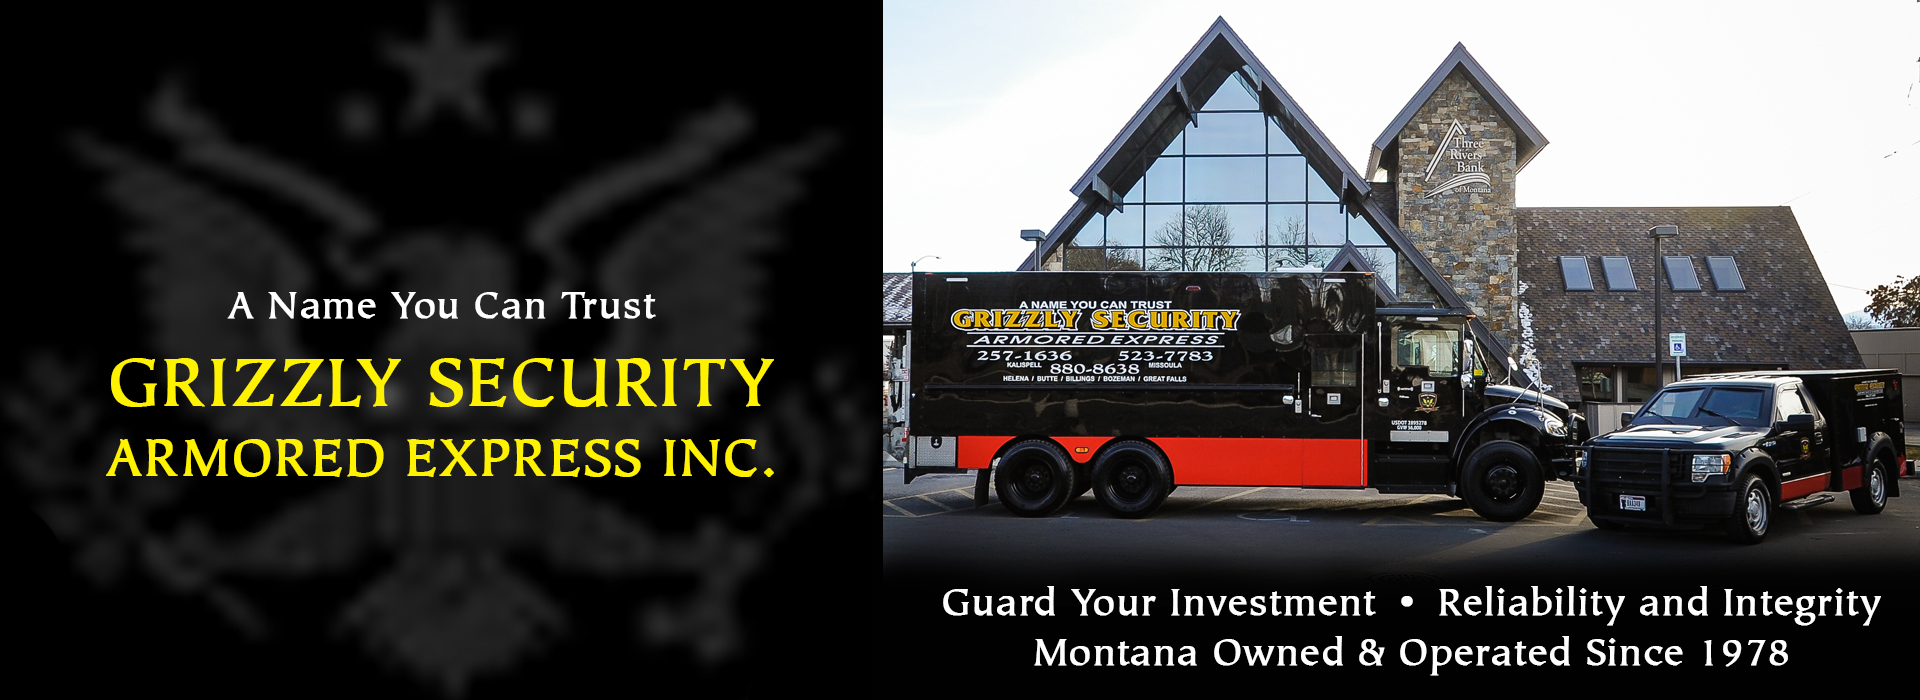 Careers - Grizzly Security Armored Express